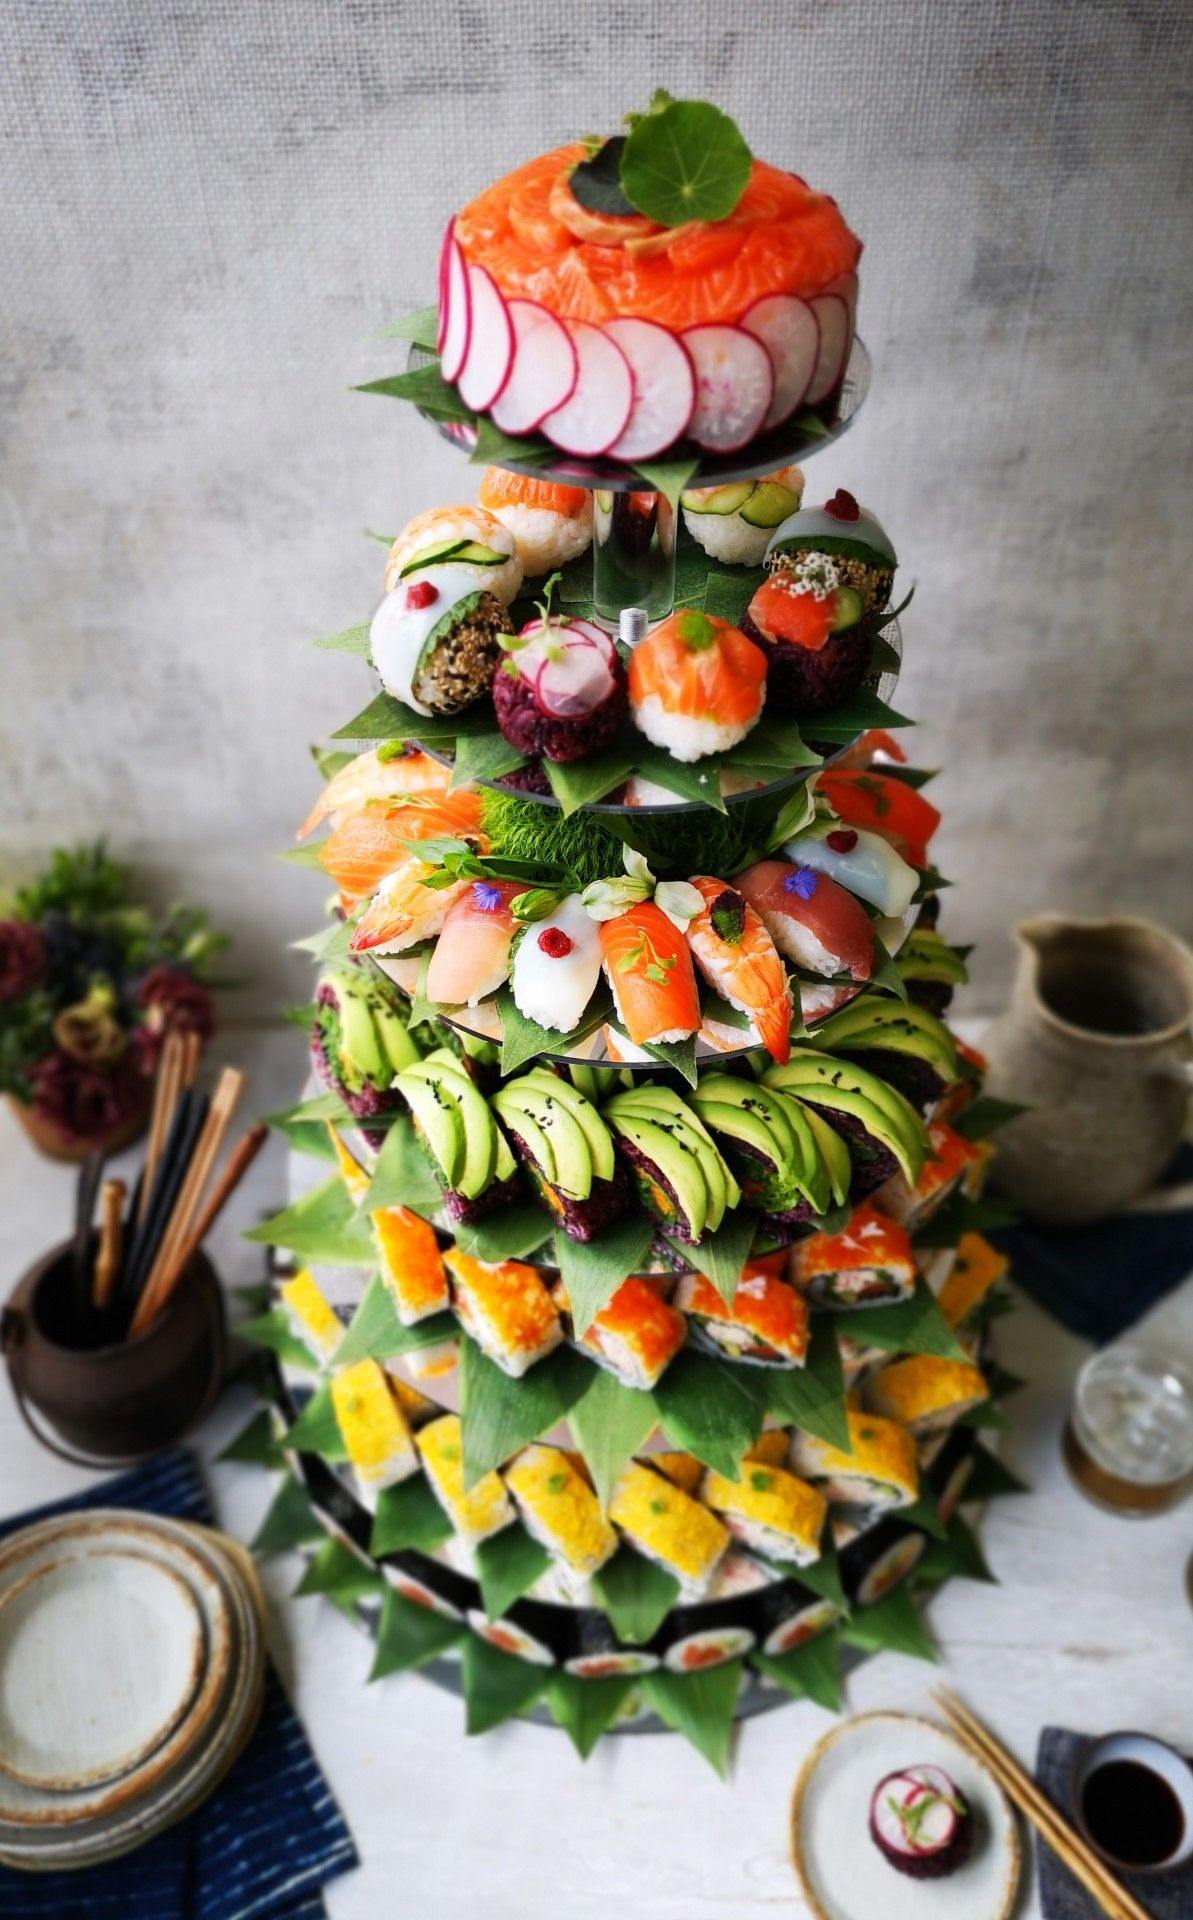 Sushi Tower Diy Sushi Sushi Party Sushi Libera la tua fame e provali tutti! sushi tower diy sushi sushi party